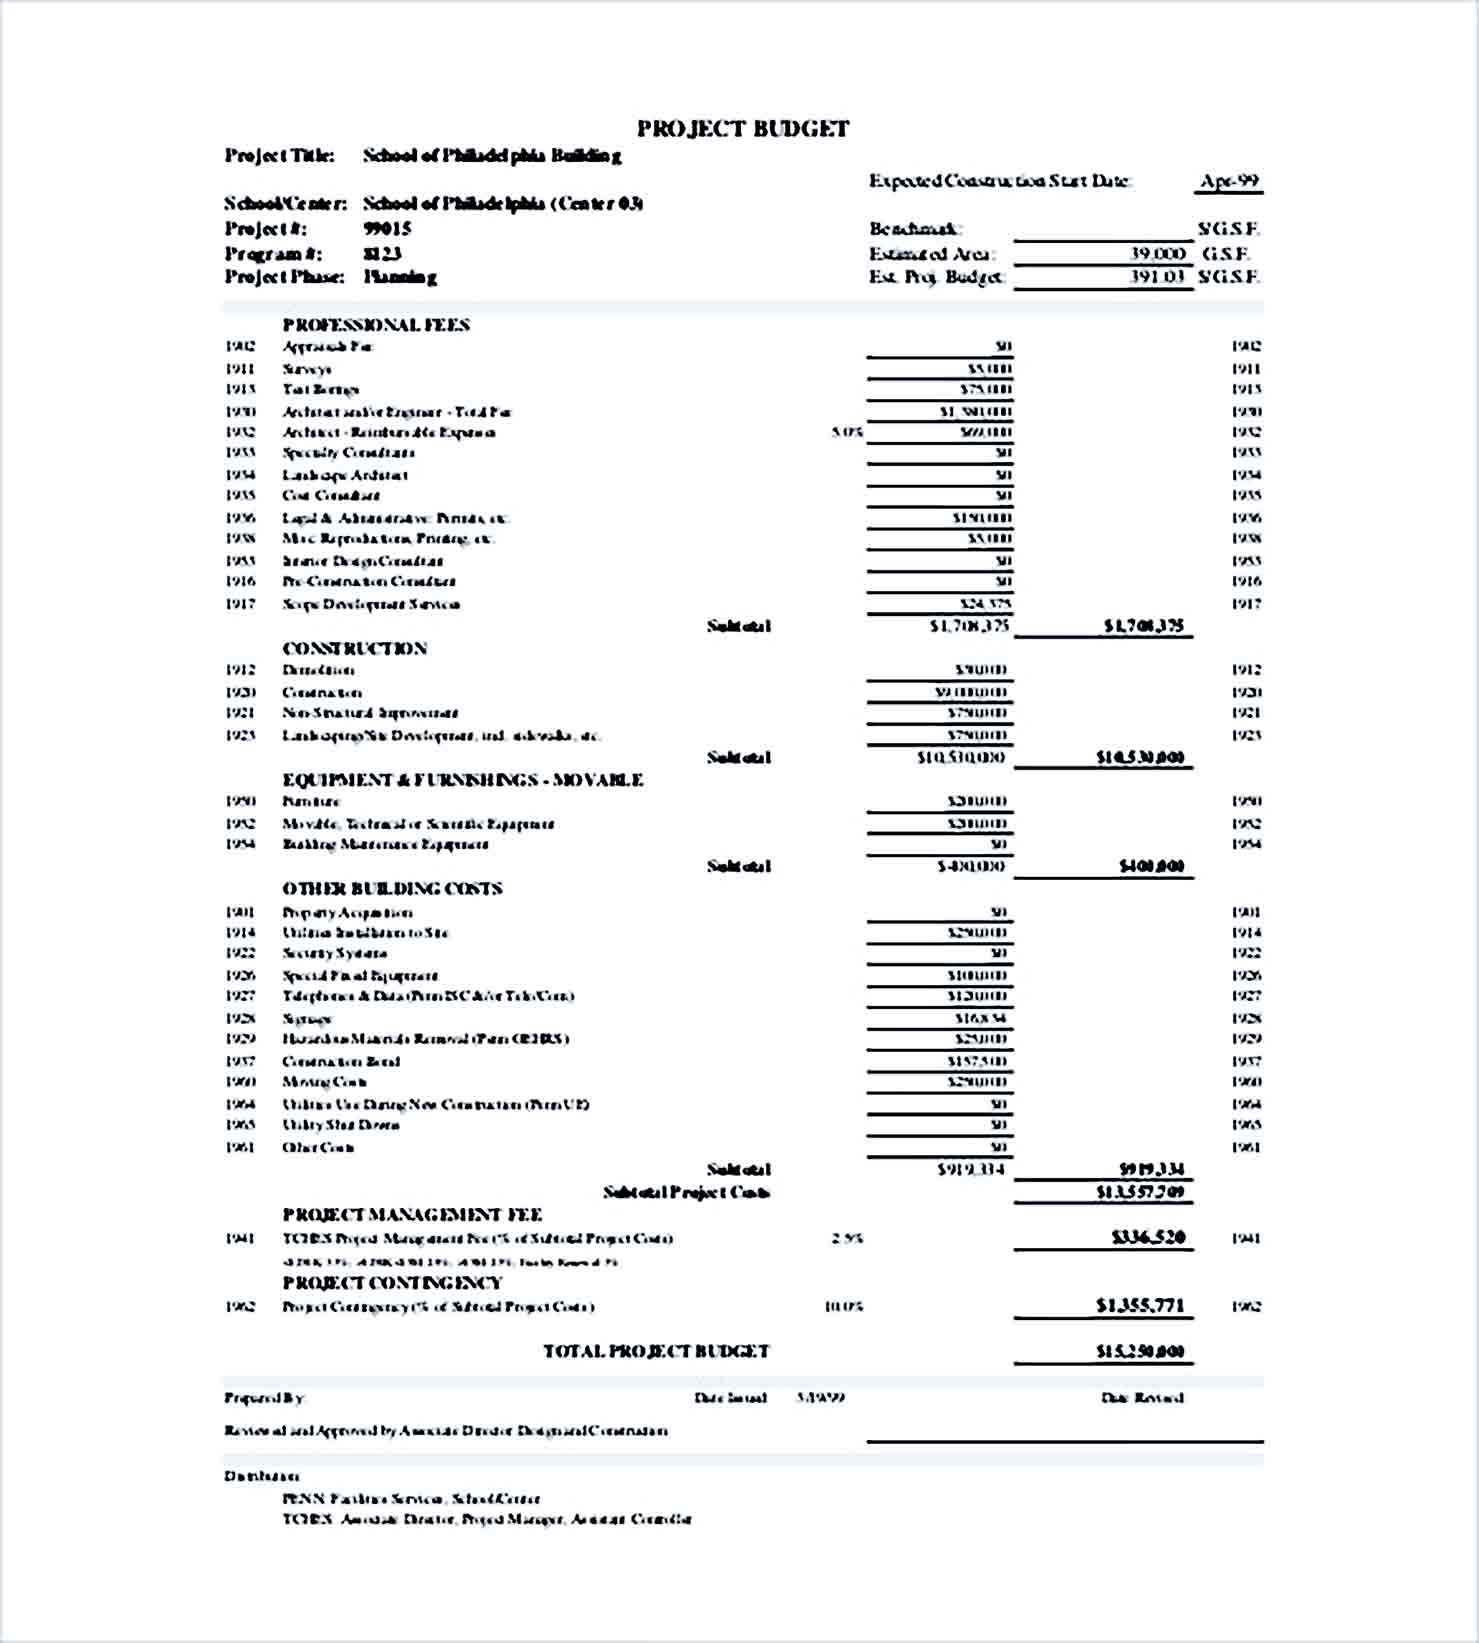 Sample Construction Project Budget 1